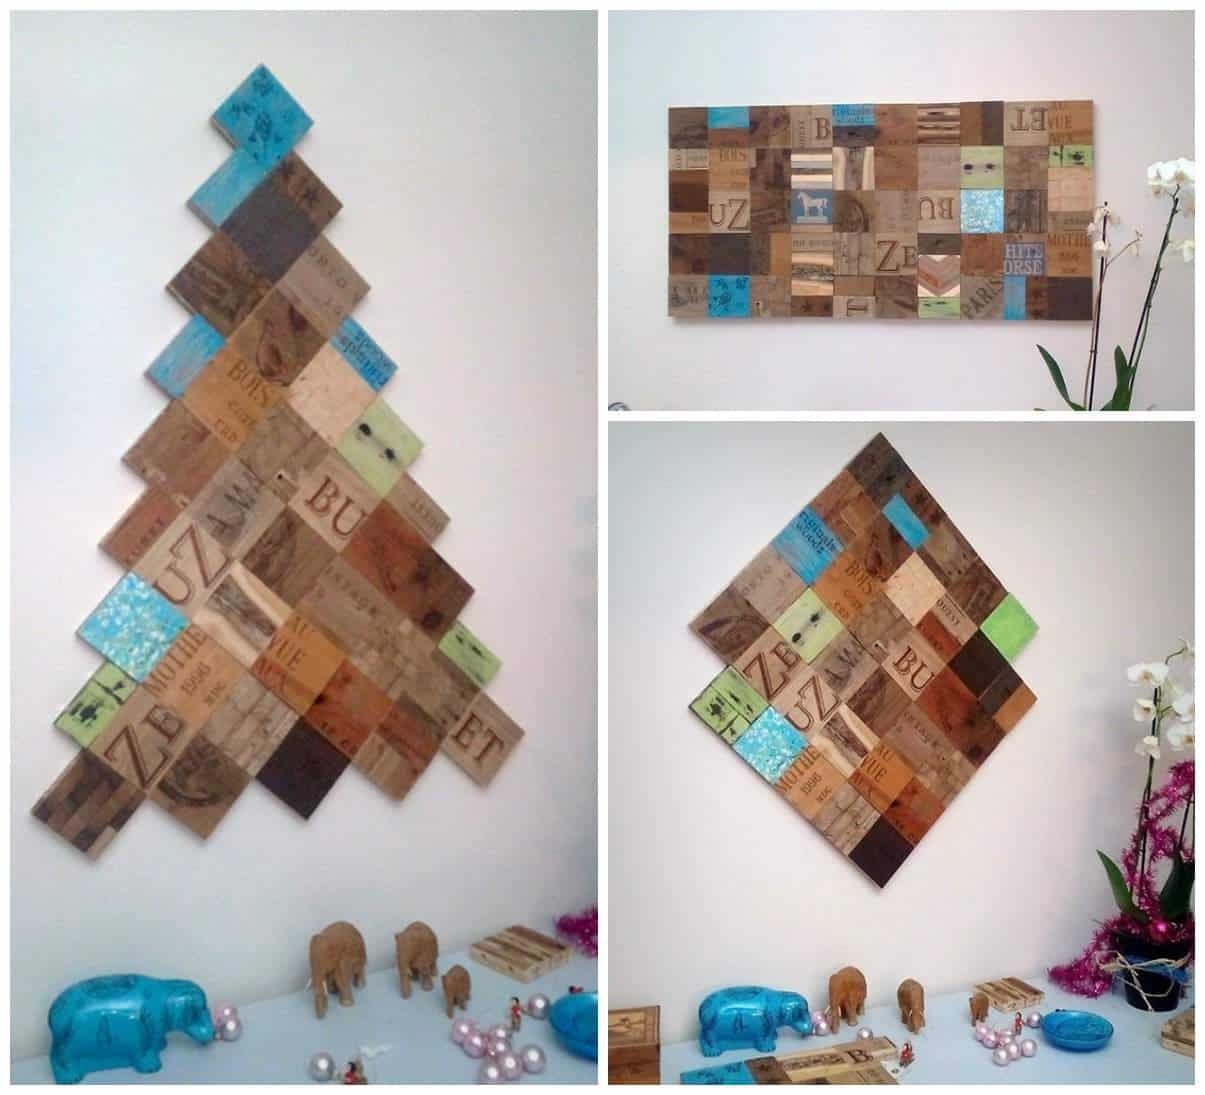 Unlimited Creative Decor Using 4x4 Magnetic Reclaimed Wood ...